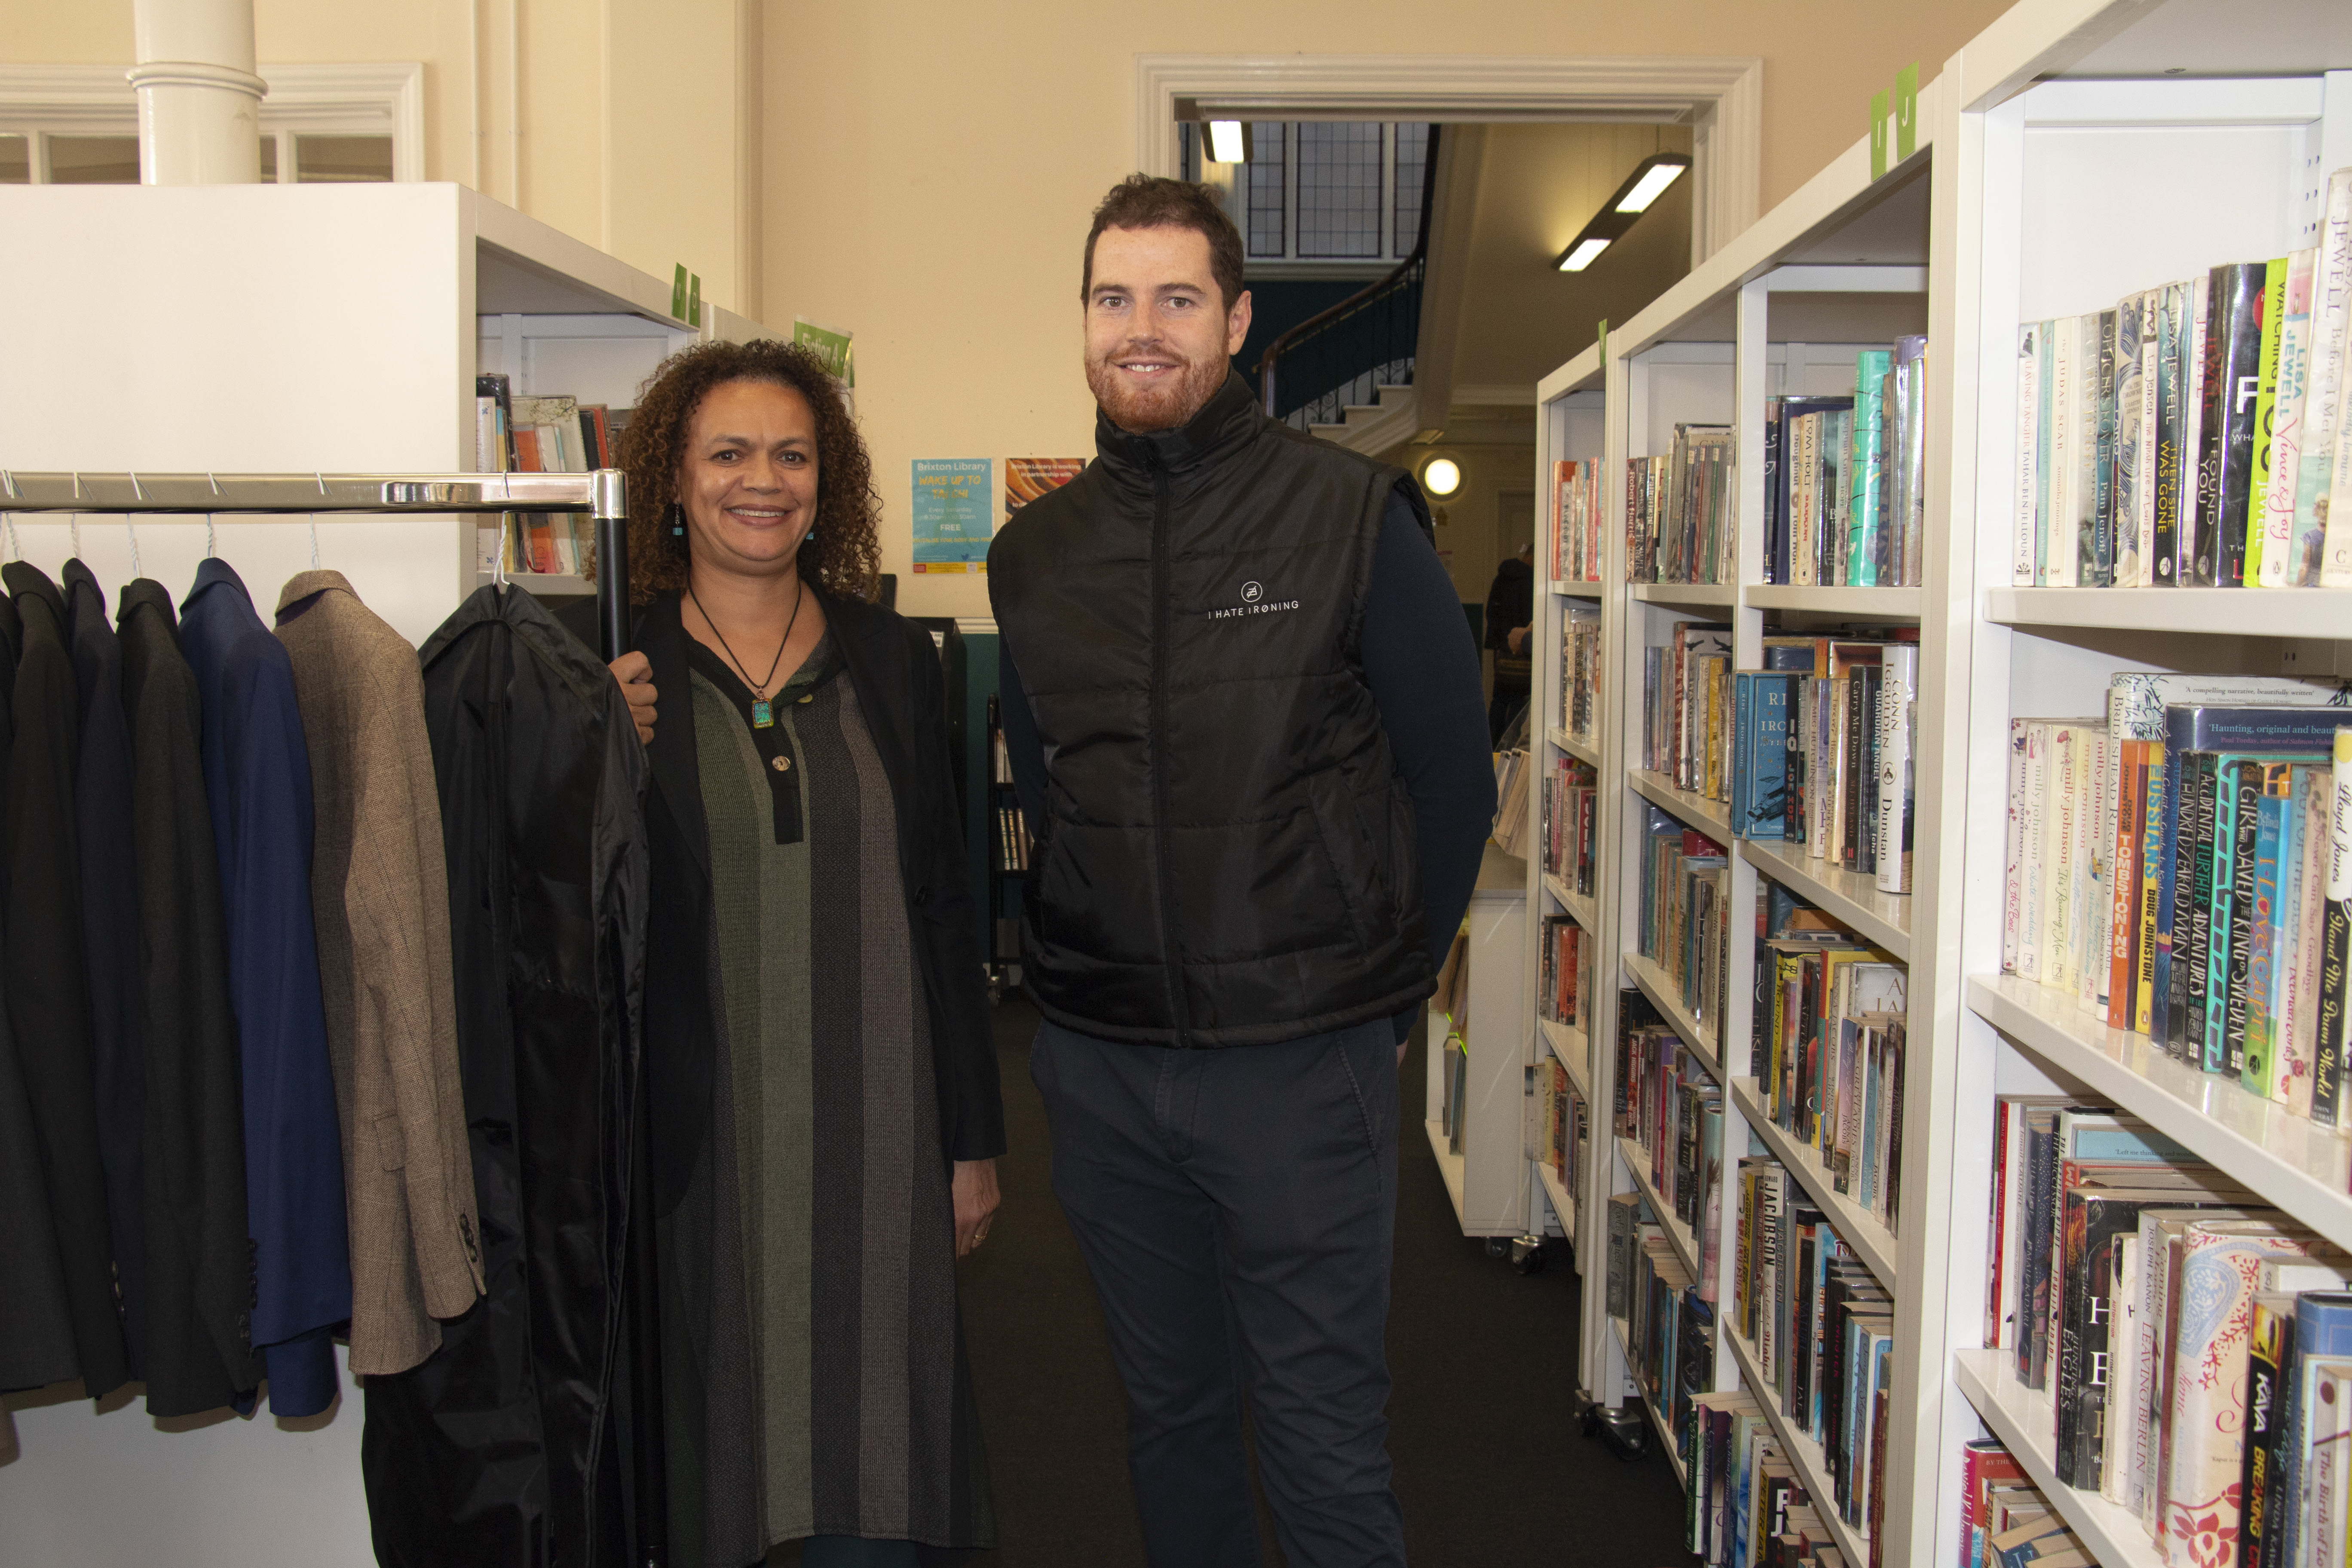 Abibat Olulode from Brixton Library and Matt Connelly of ihateironing with some of the clothes available